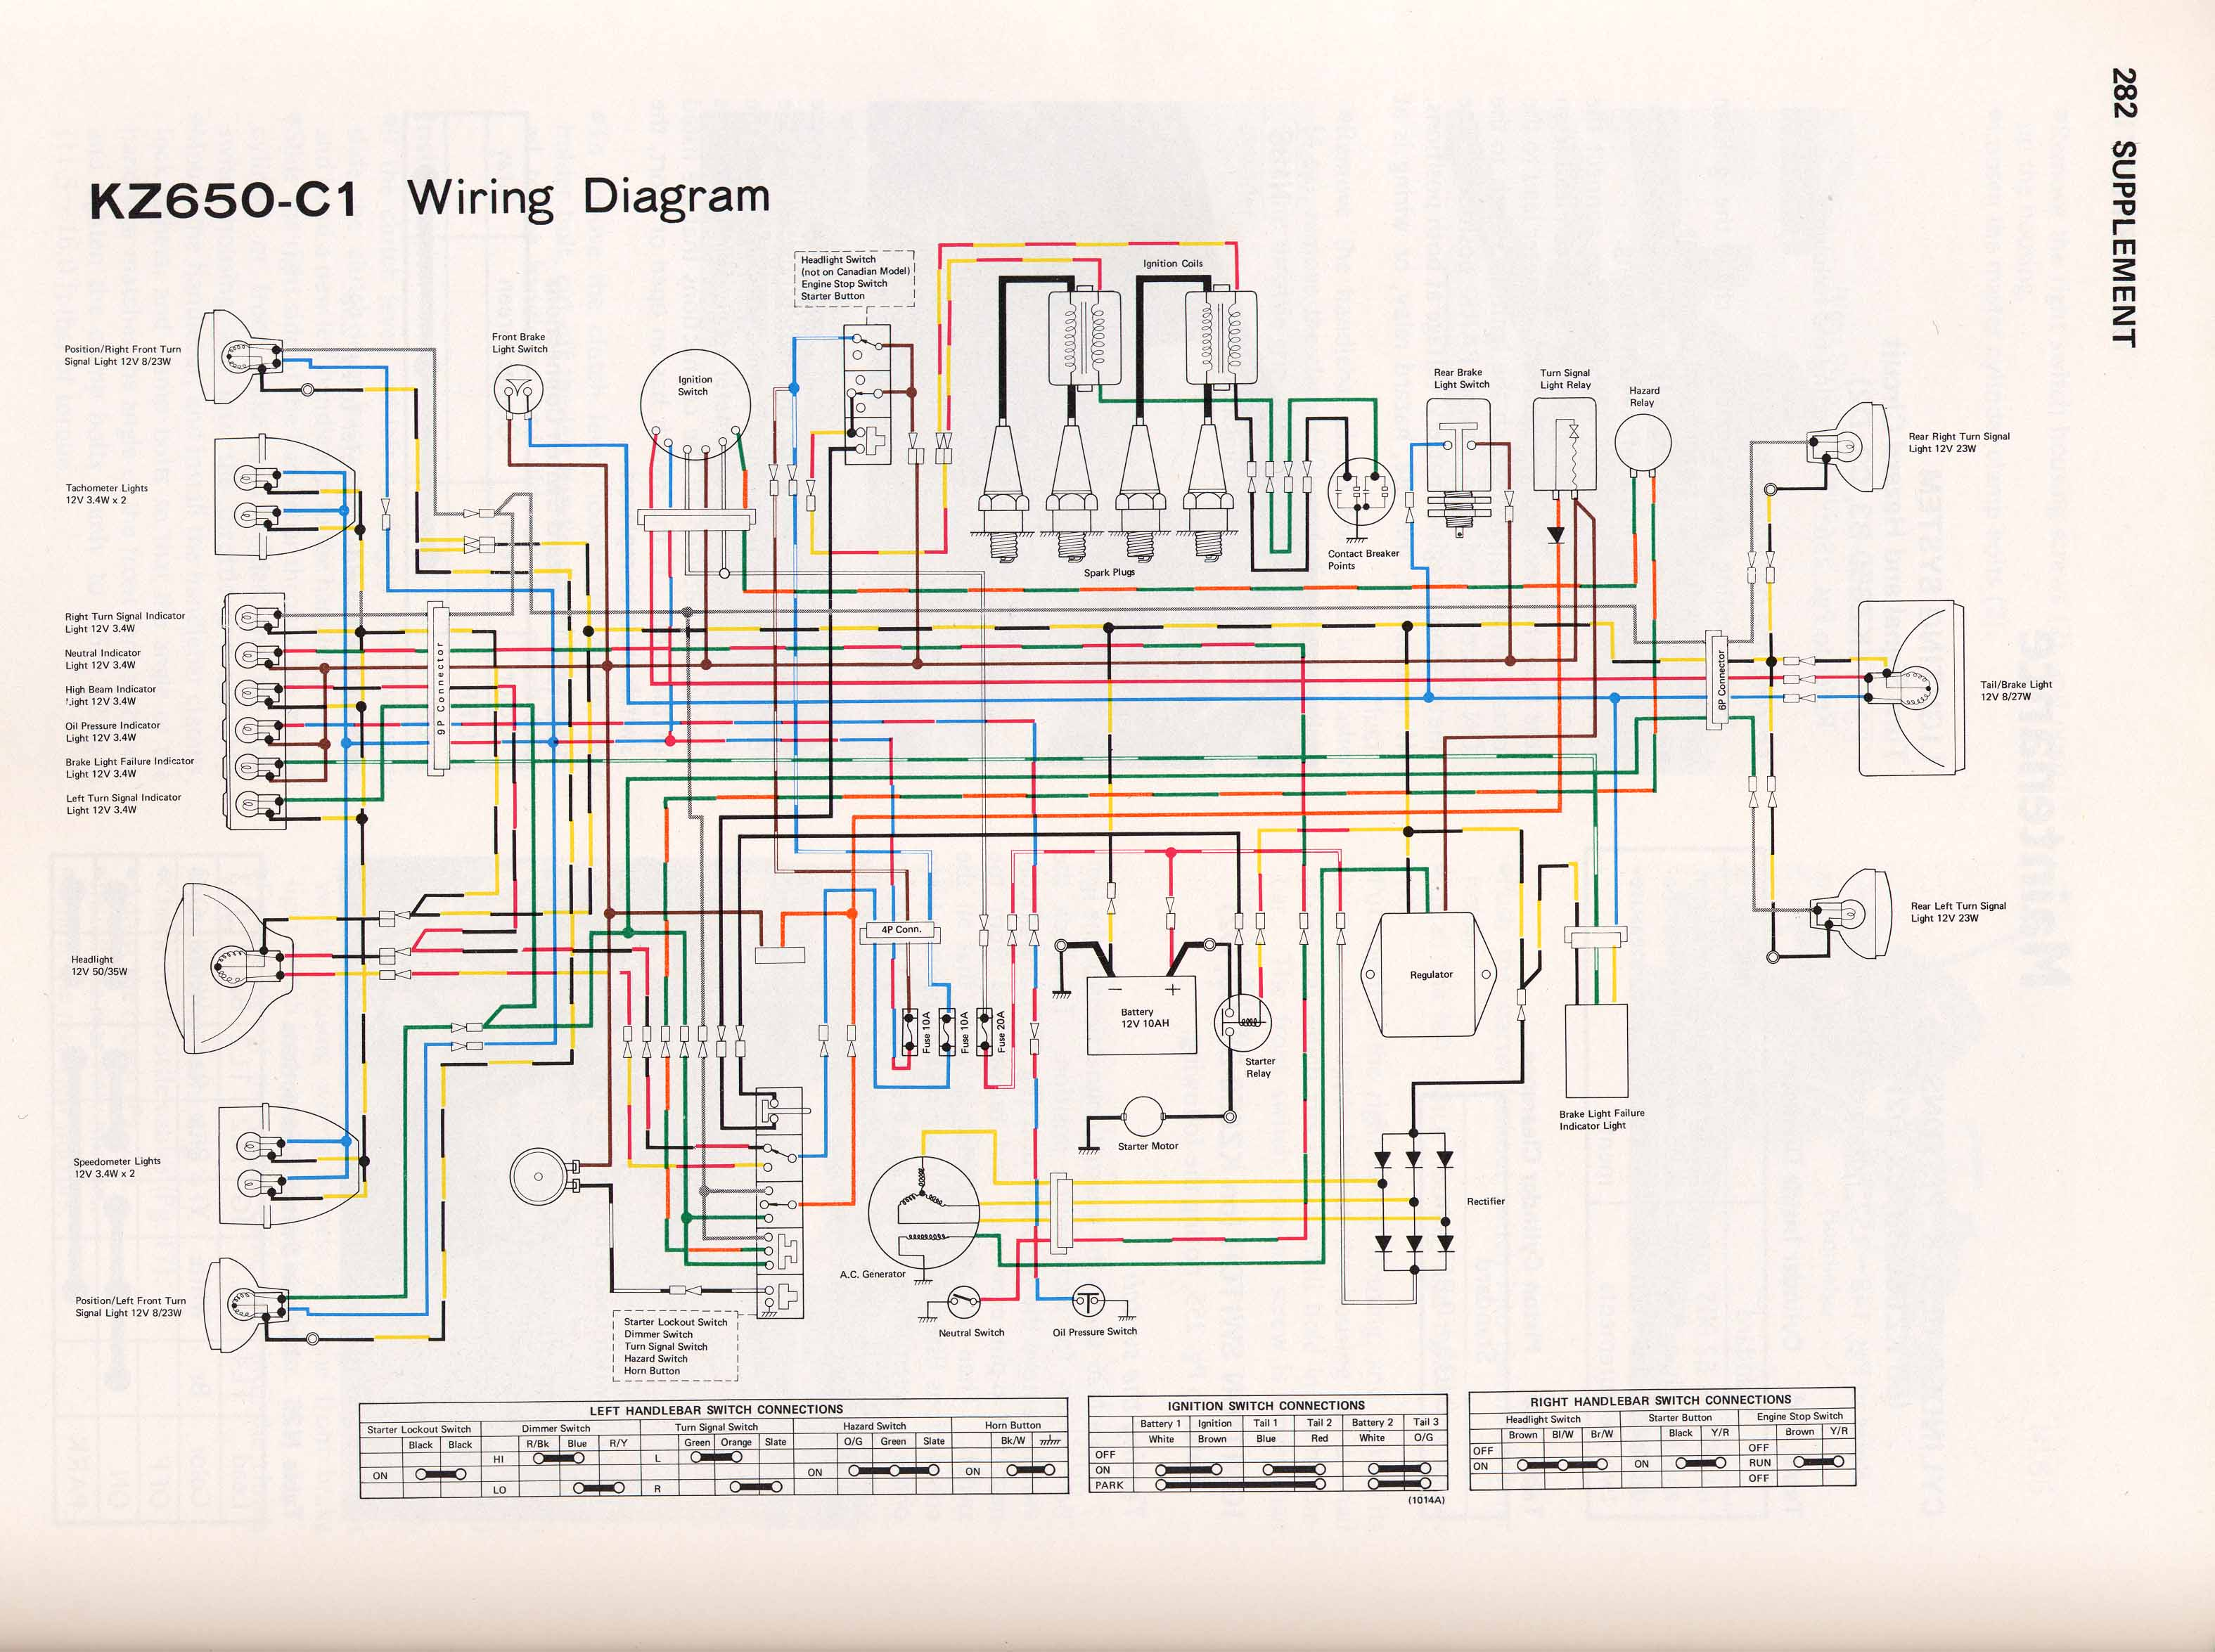 KZ650 C1 kz650 info wiring diagrams kawasaki z750 wiring diagram at eliteediting.co